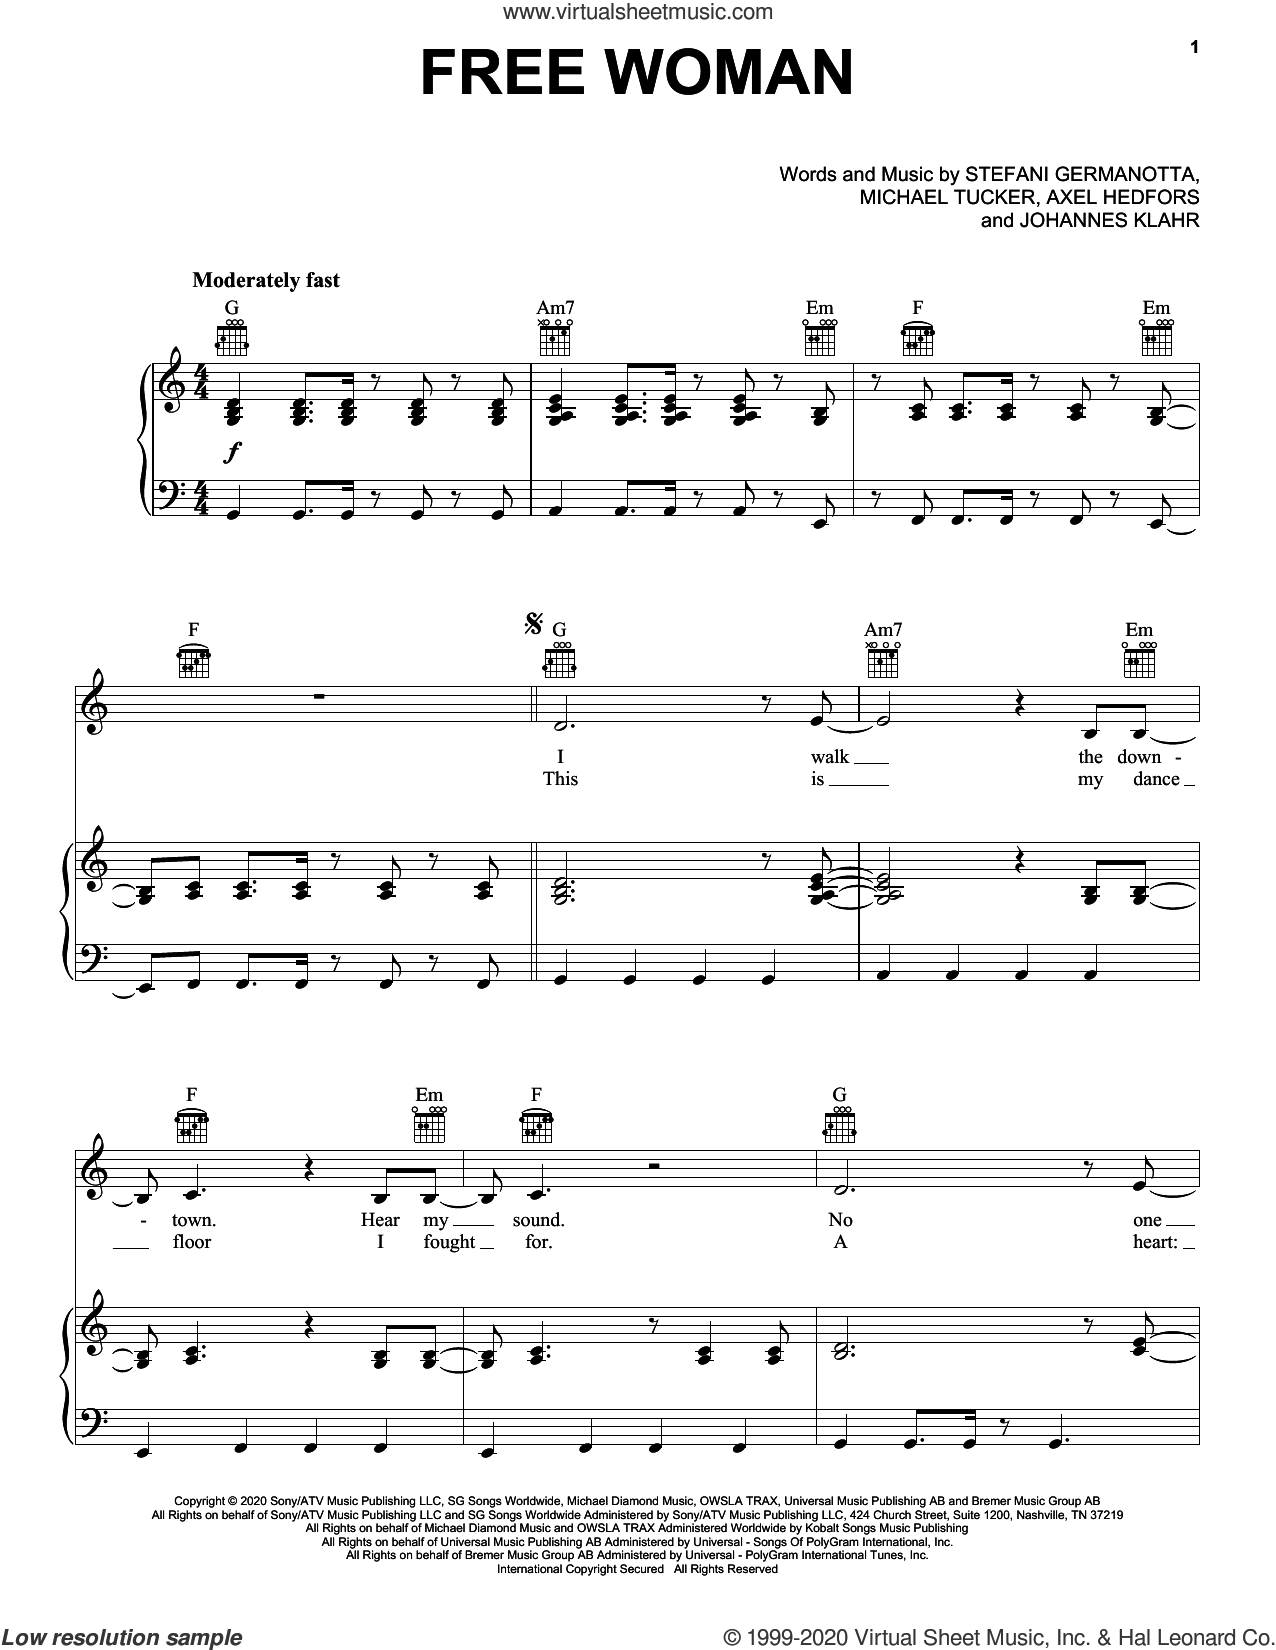 Free Woman sheet music for voice, piano or guitar by Lady Gaga, Axel Hedfors, Johannes Klahr and Michael Tucker, intermediate skill level